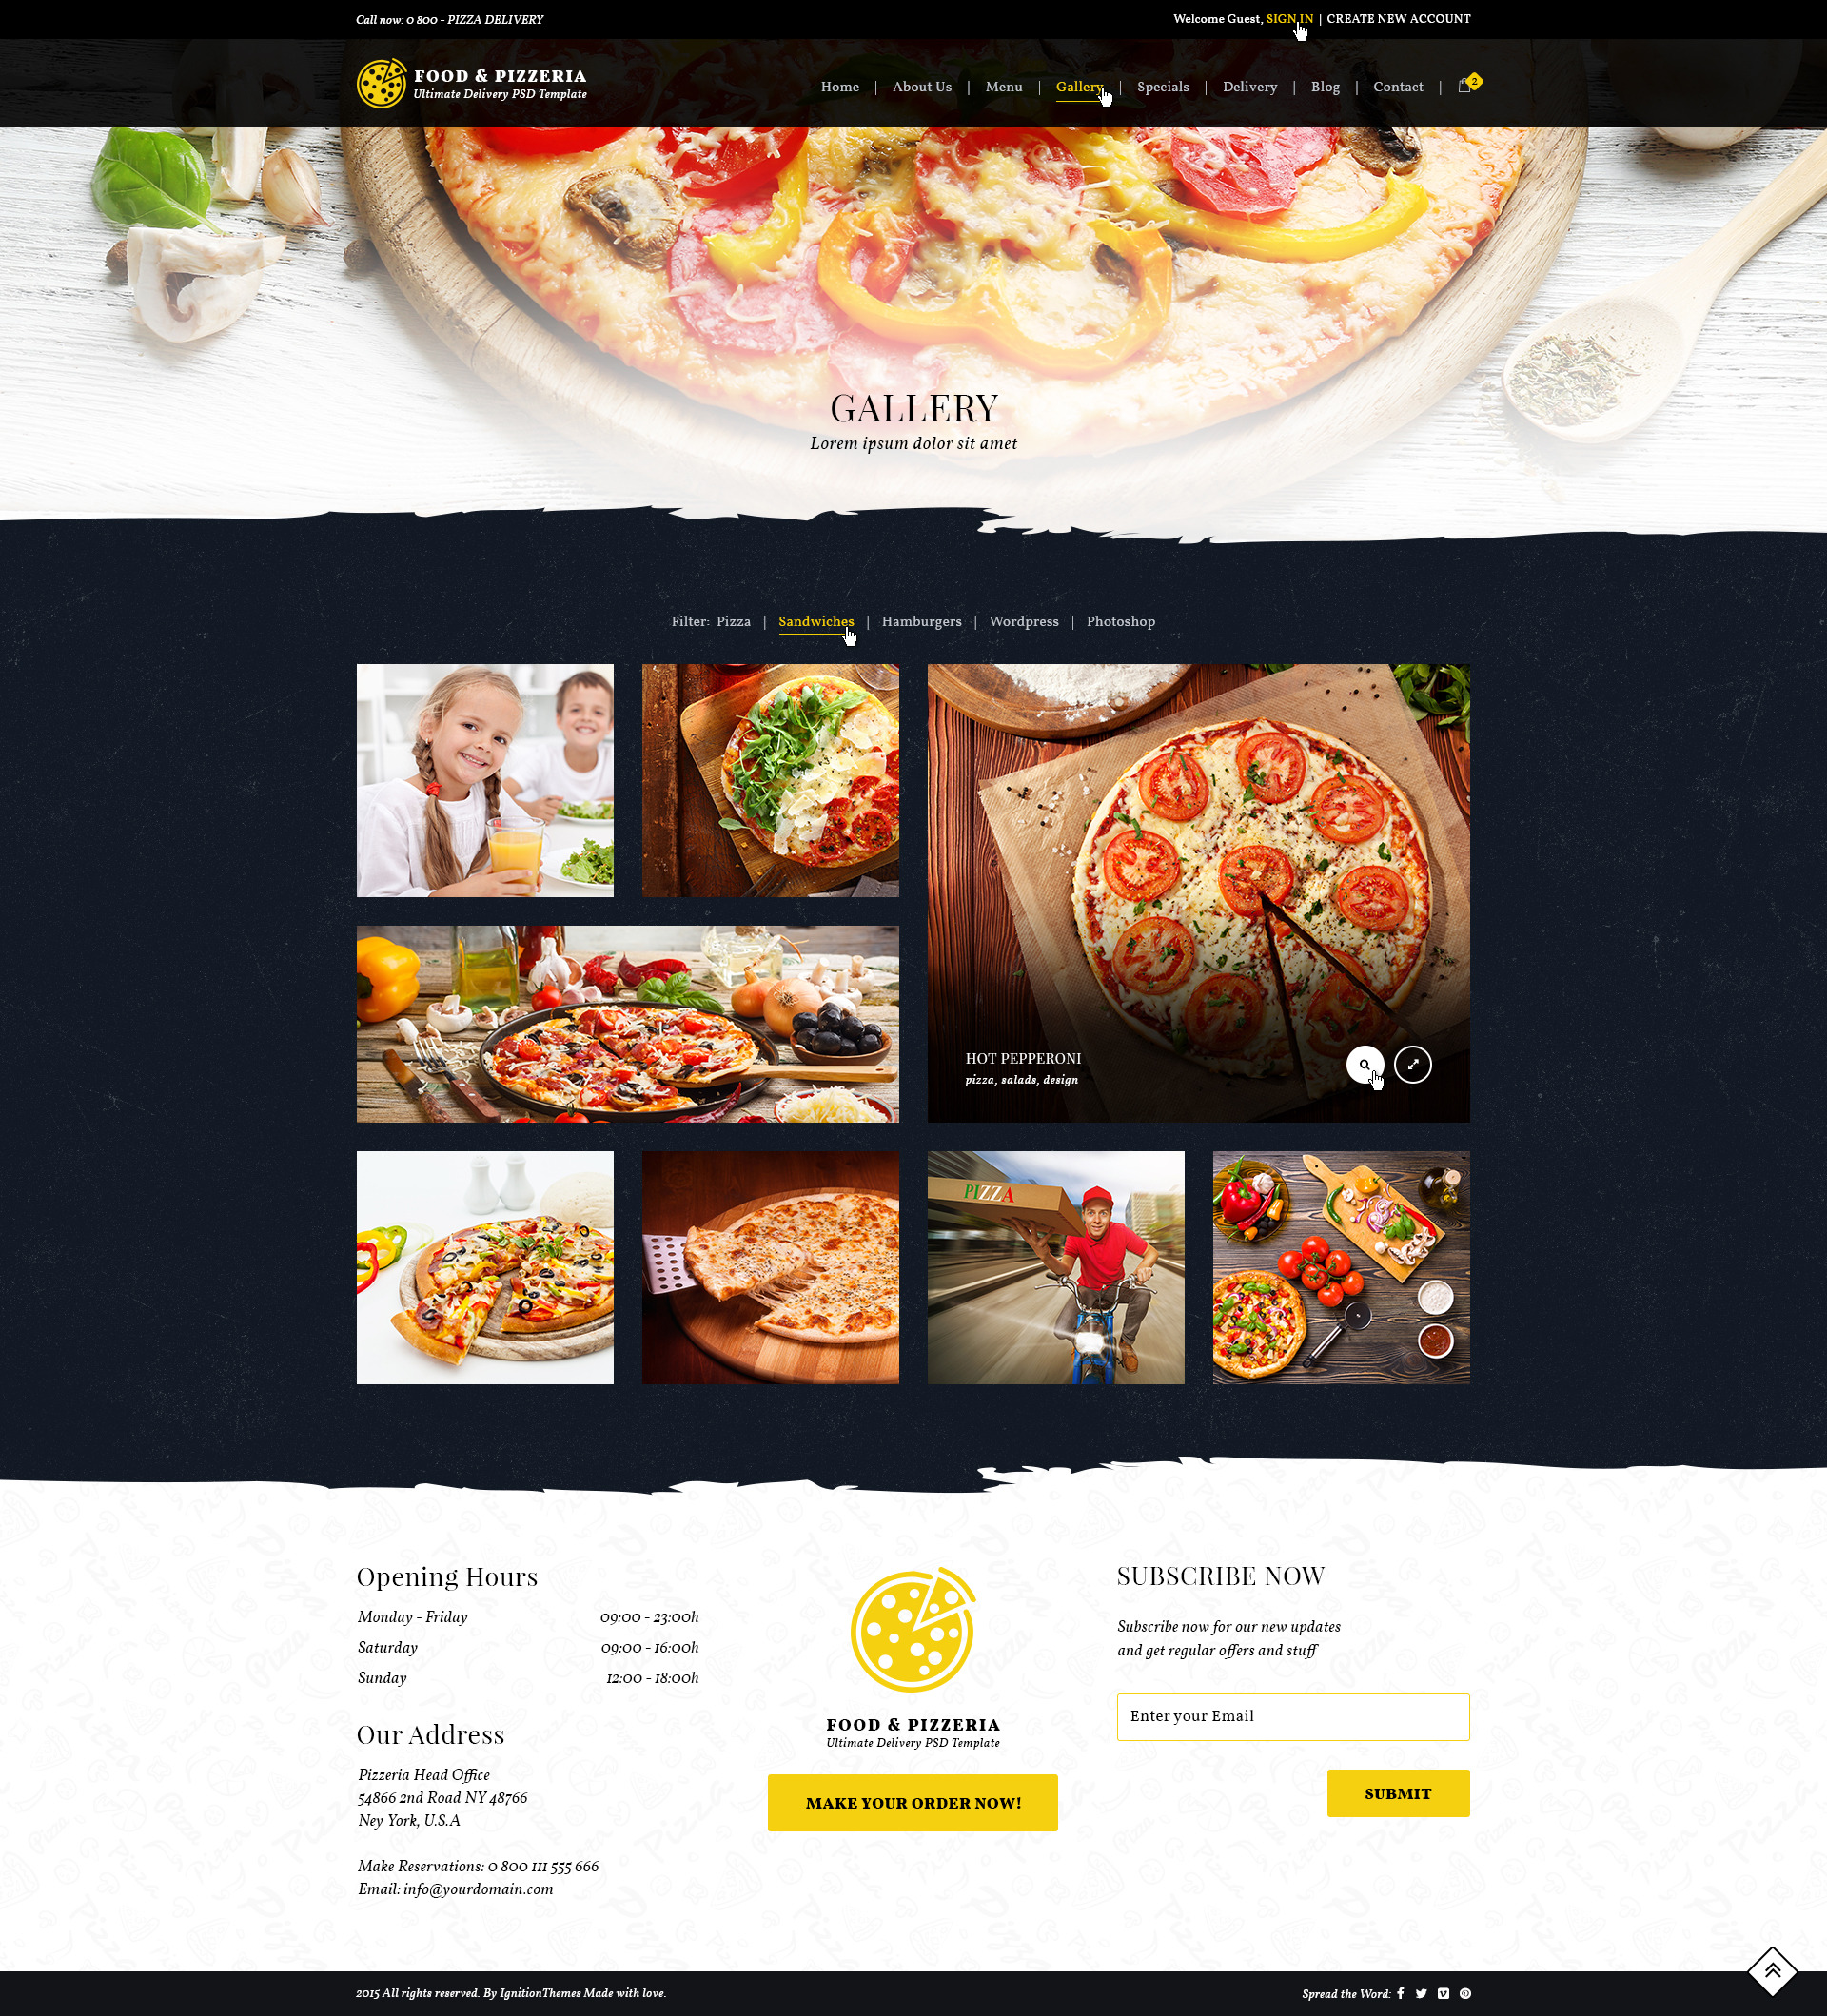 Food Pizzeria Ultimate Delivery PSD Template By IgnitionThemes - Delivery menu template